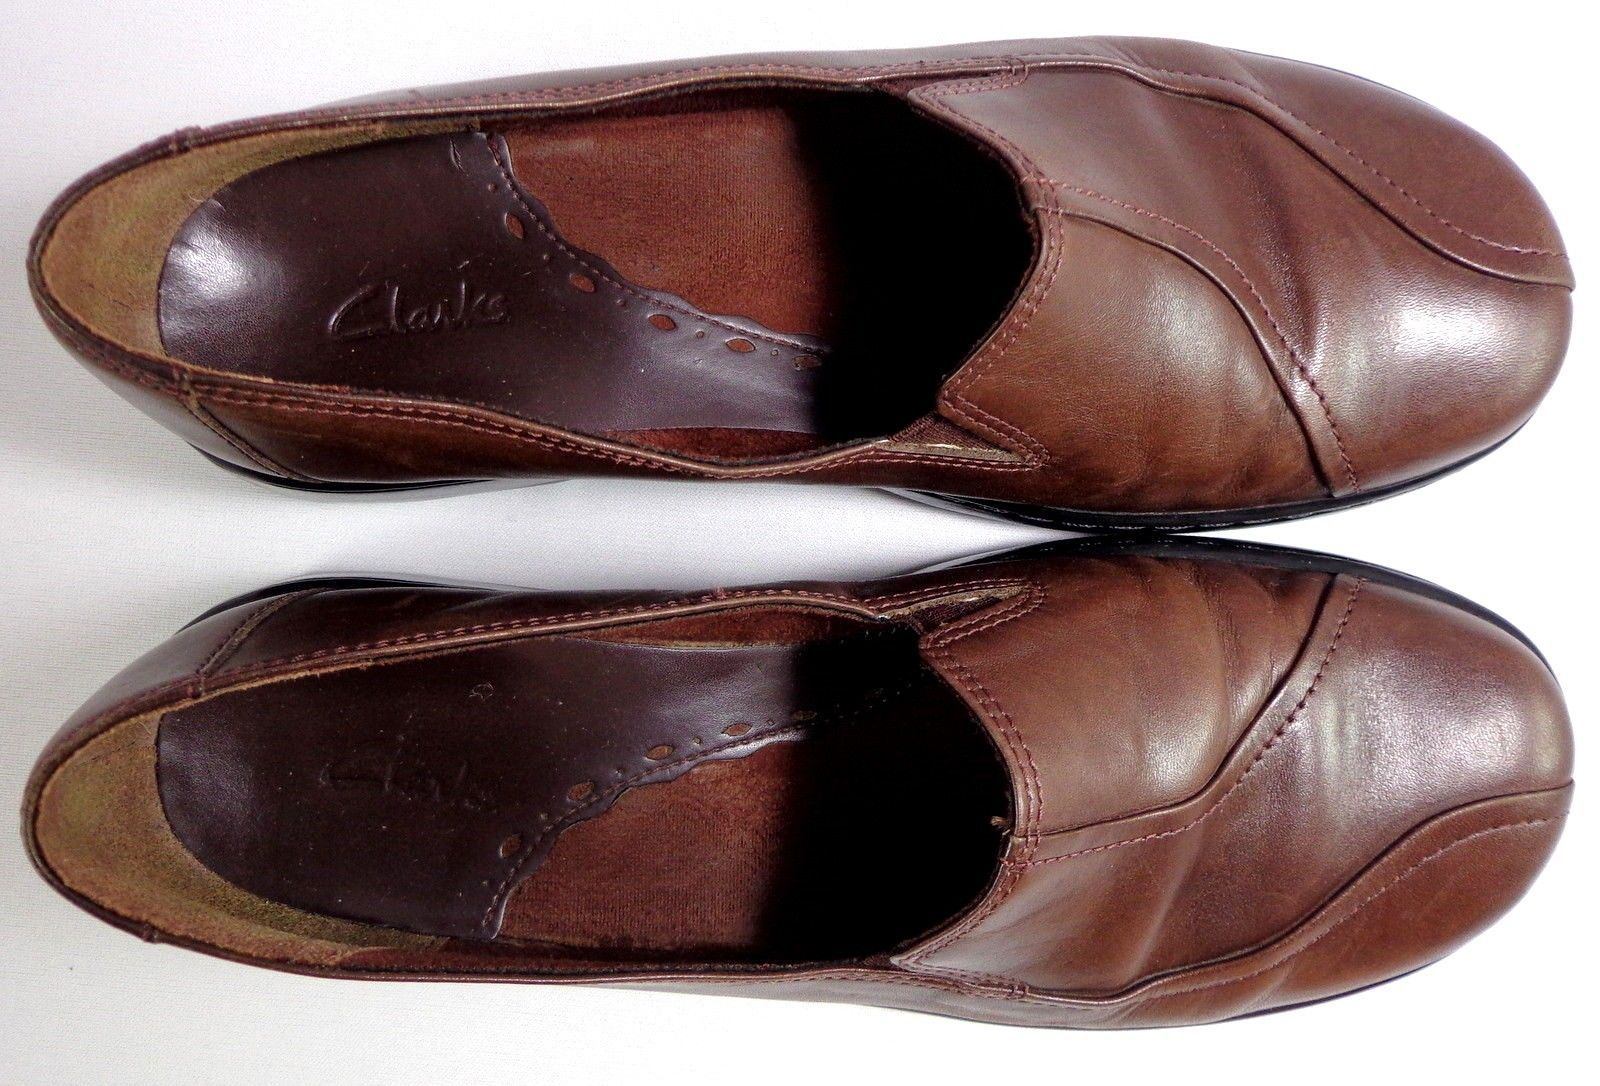 Clarks Loafers Womens Brown Leather Slip On Shoes Size 8.5 M